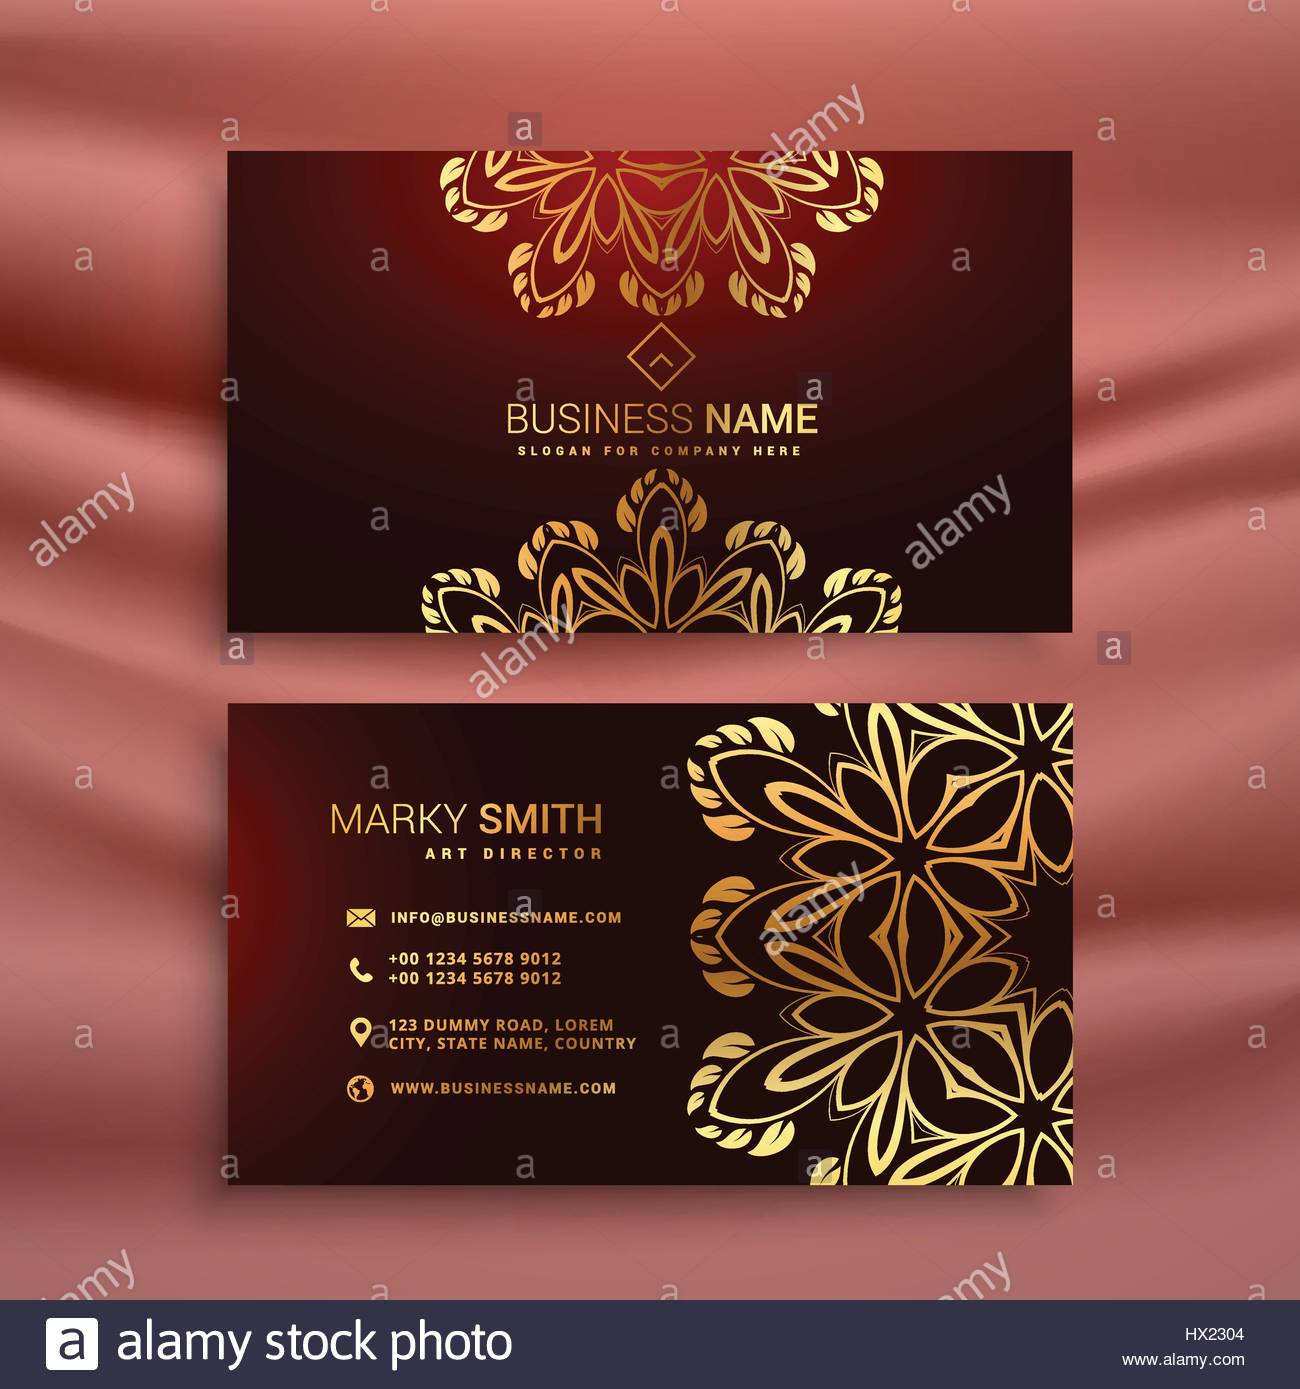 golden floral luxury business card template Stock Vector Art ...